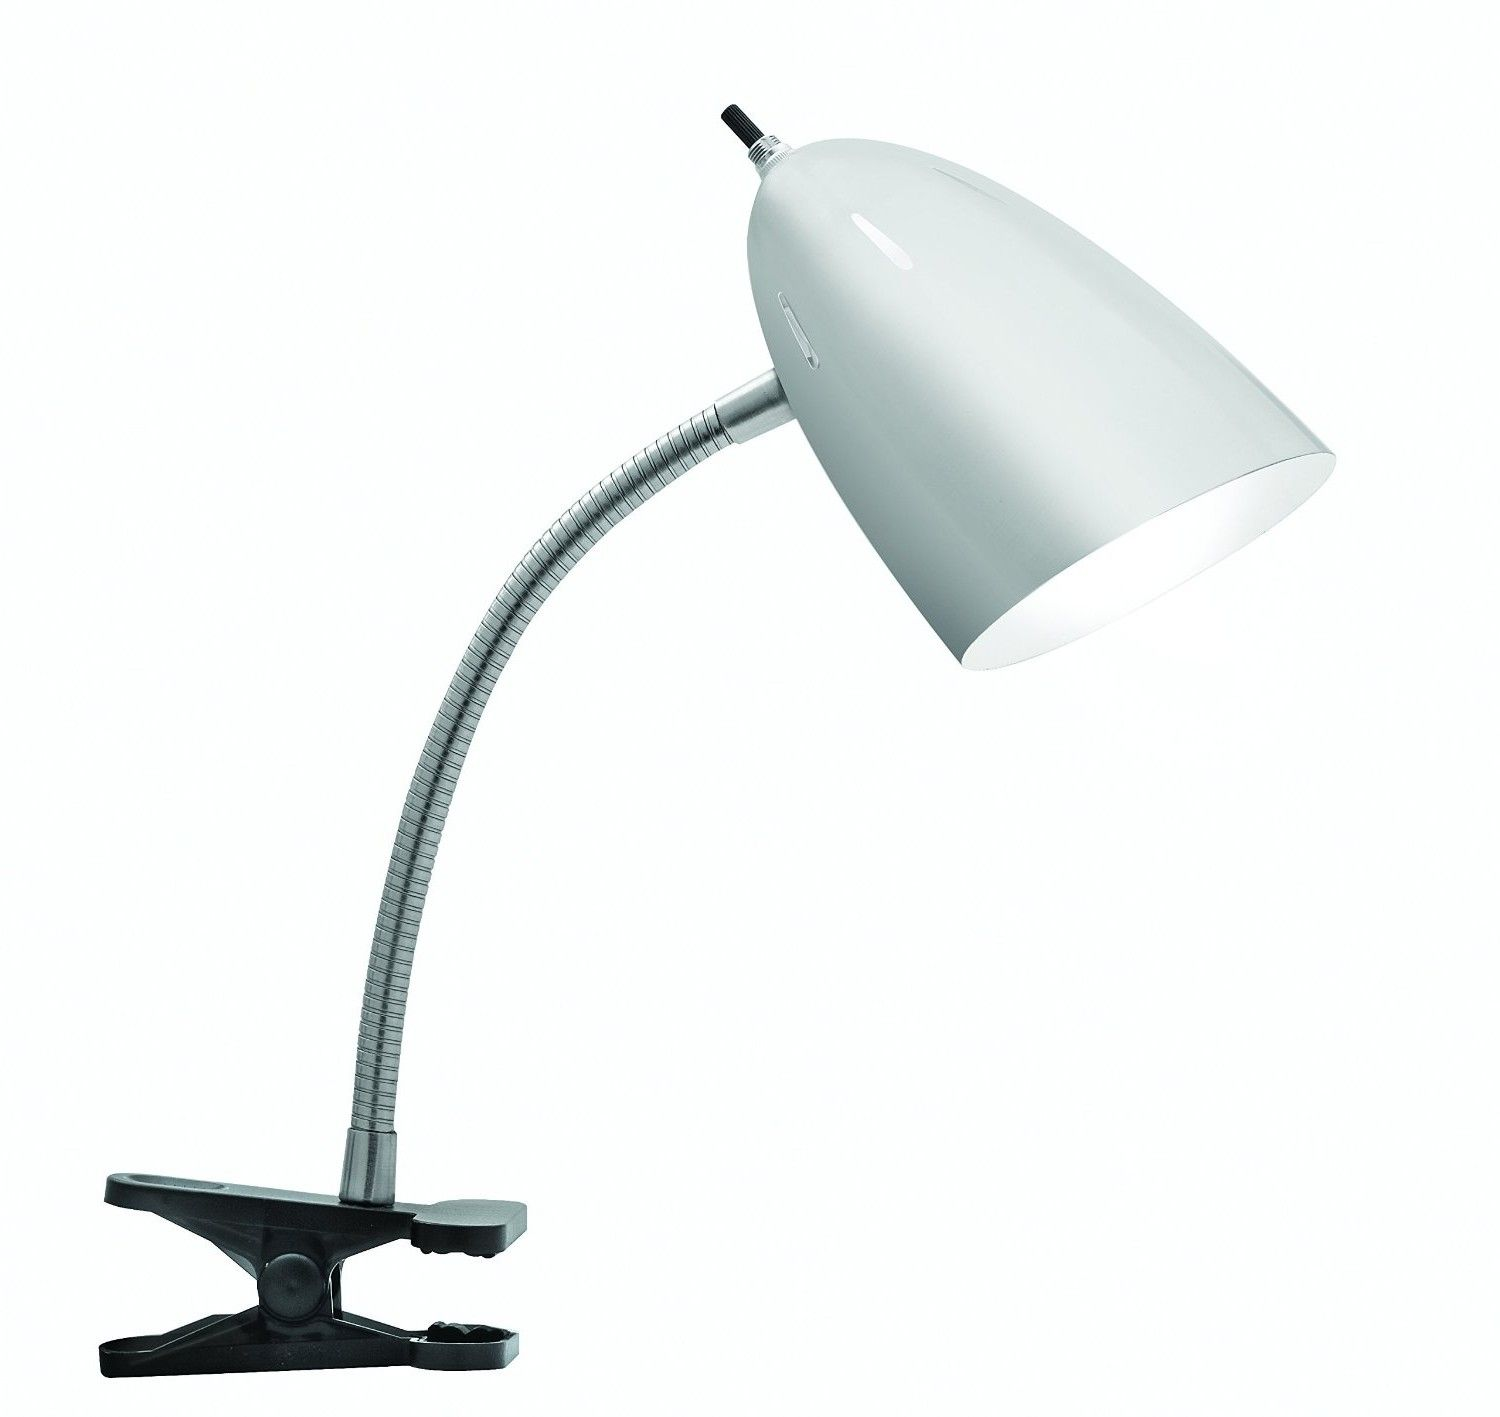 Desk Lamps At Office Depot With Images